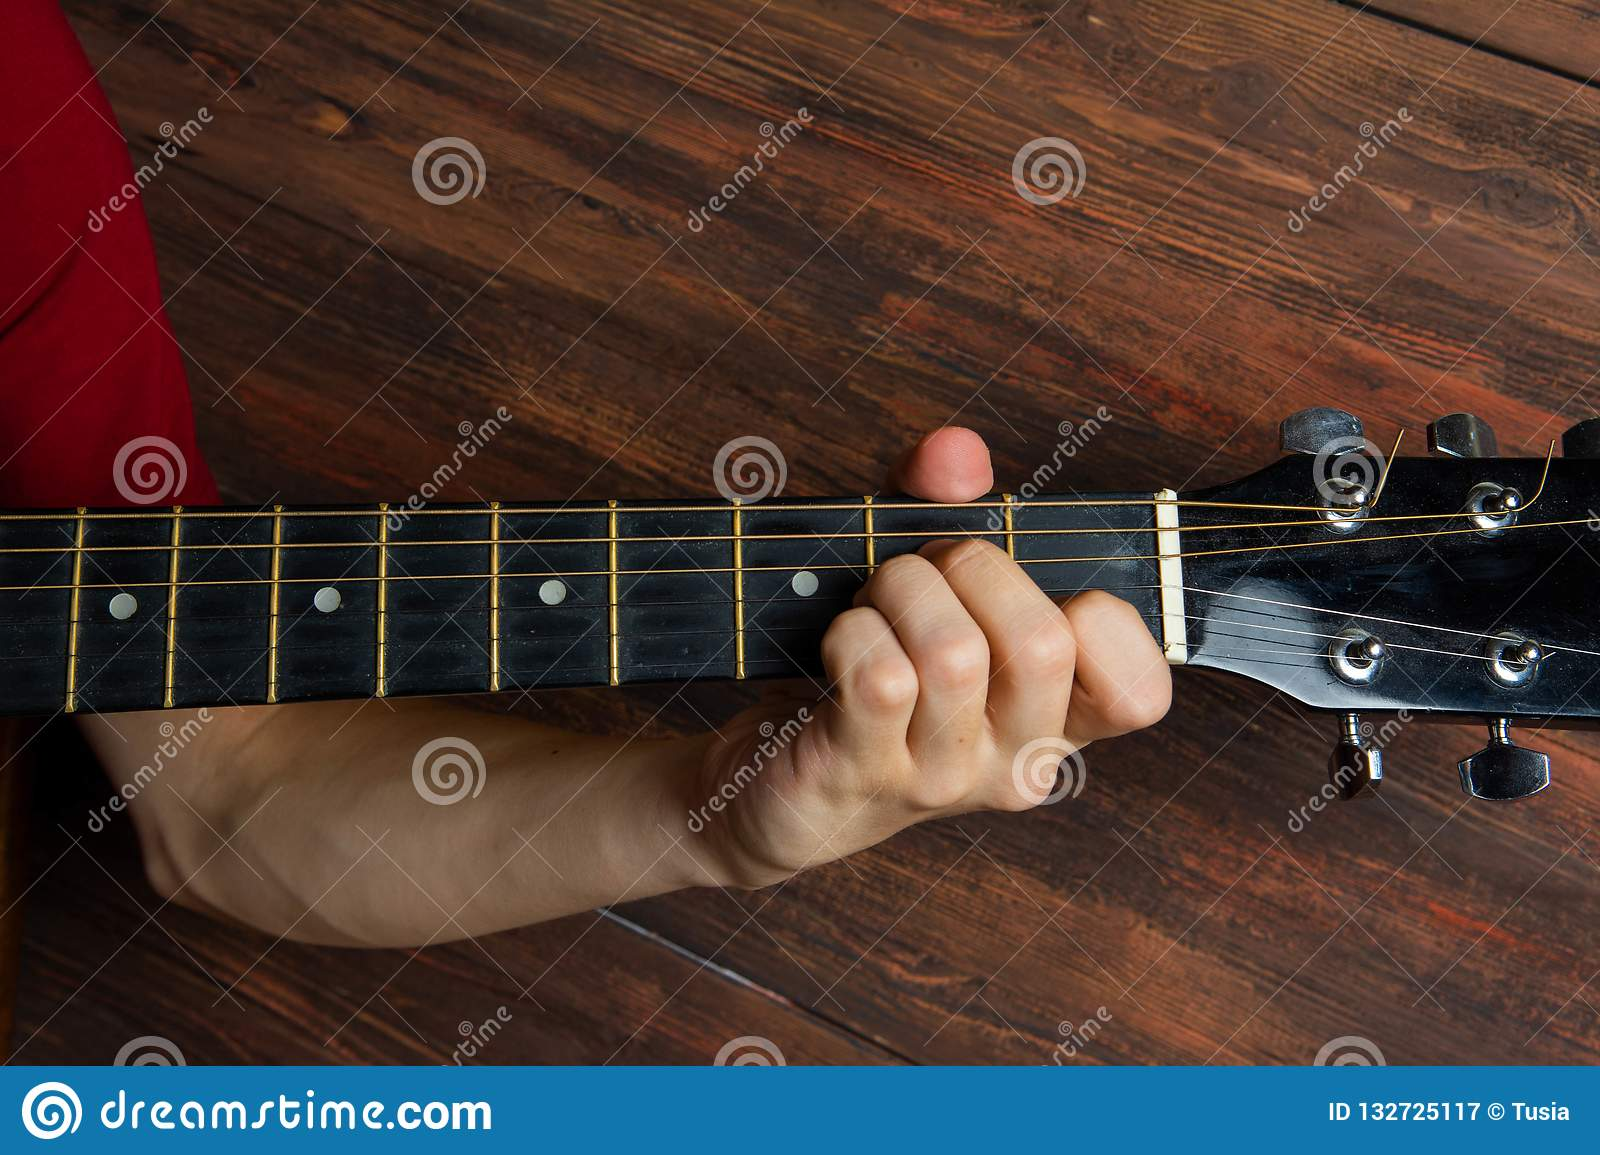 Hand of man playing six-string guitar on wooden background. Template for concert poster